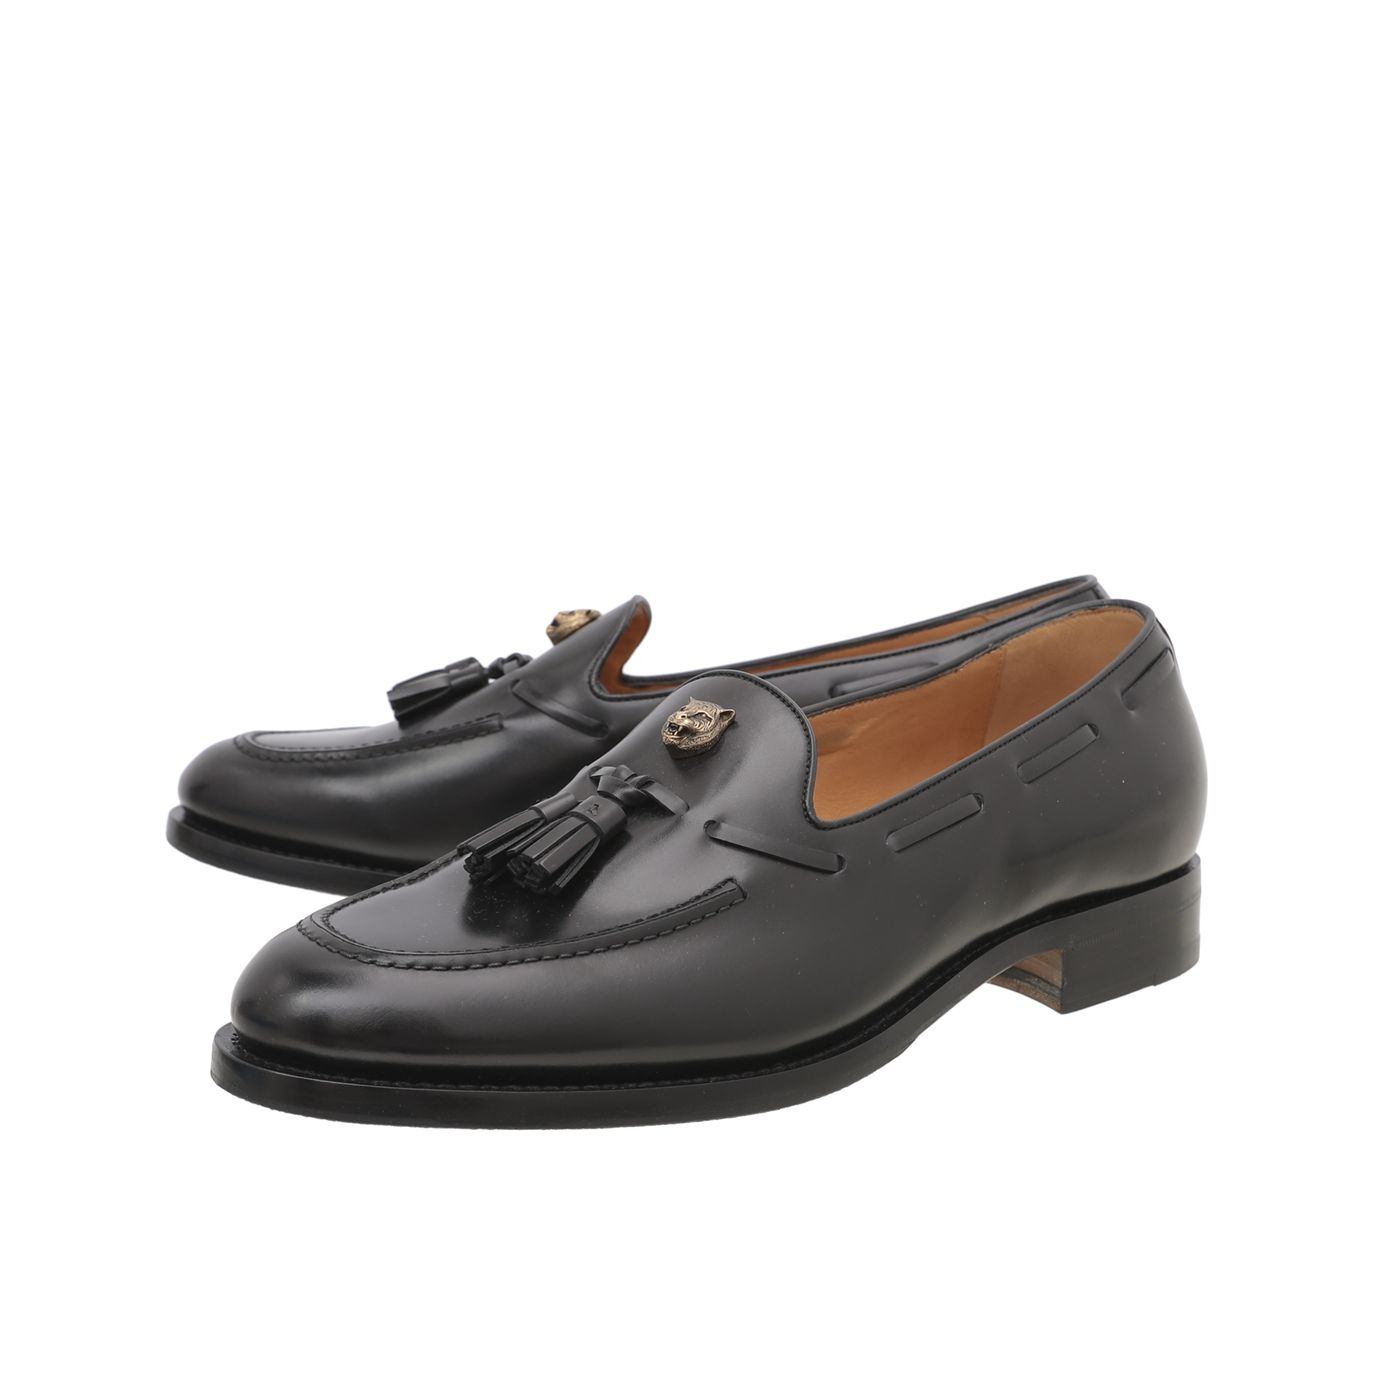 Gucci Black Sagan Tasseled Venetian Loafer 38